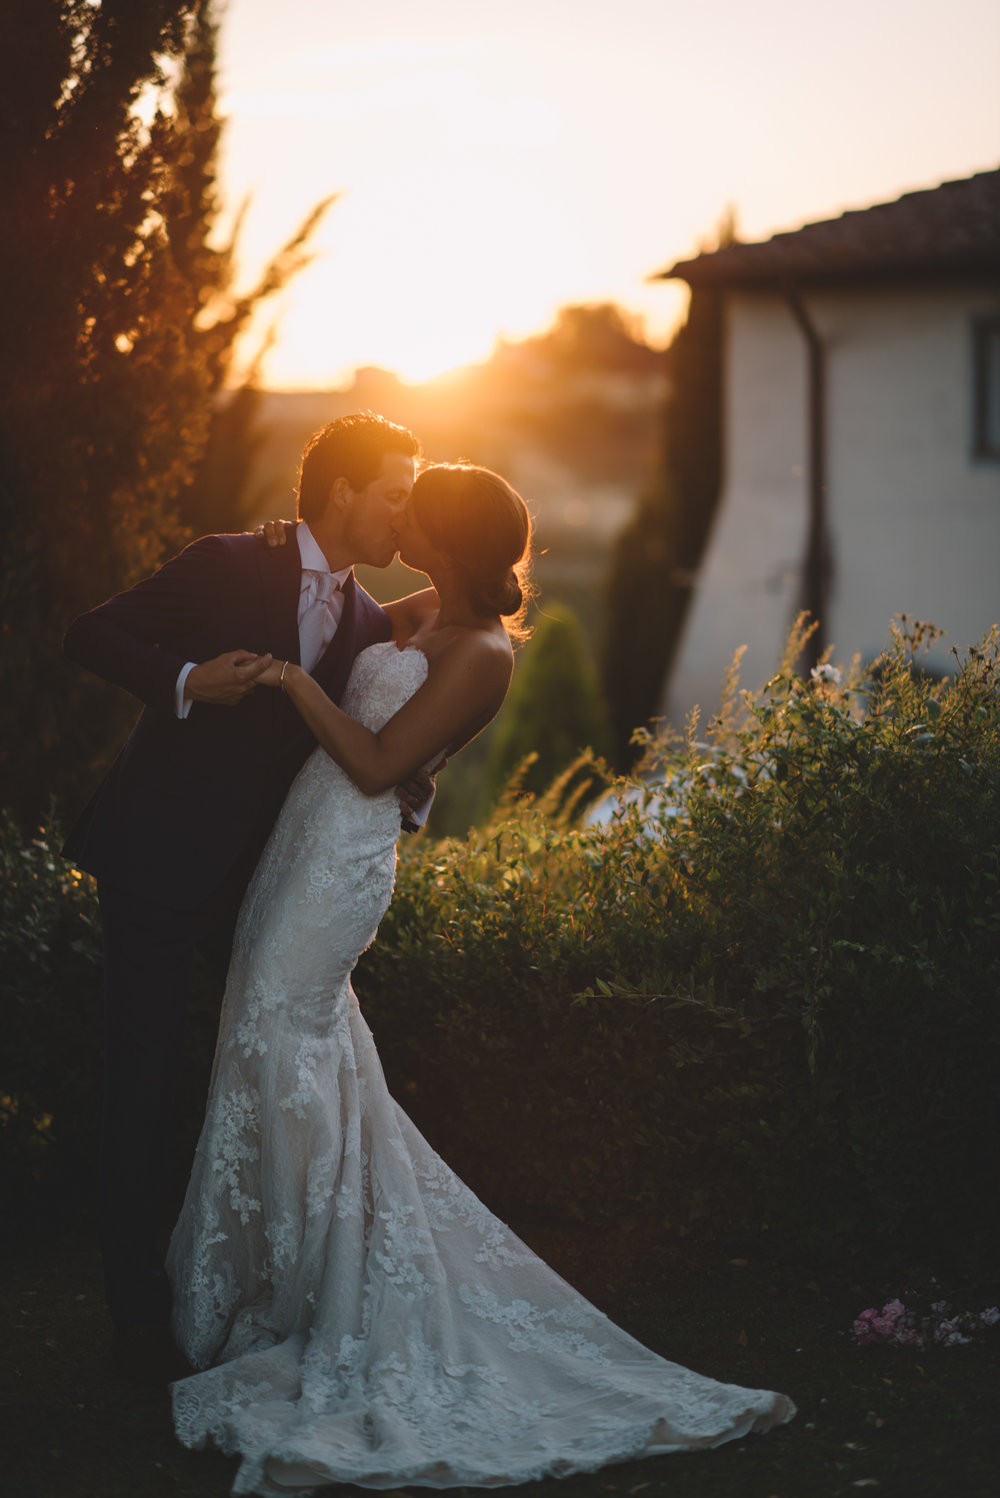 Wedding_Photographer_in_Tuscany_Italy-008.jpg